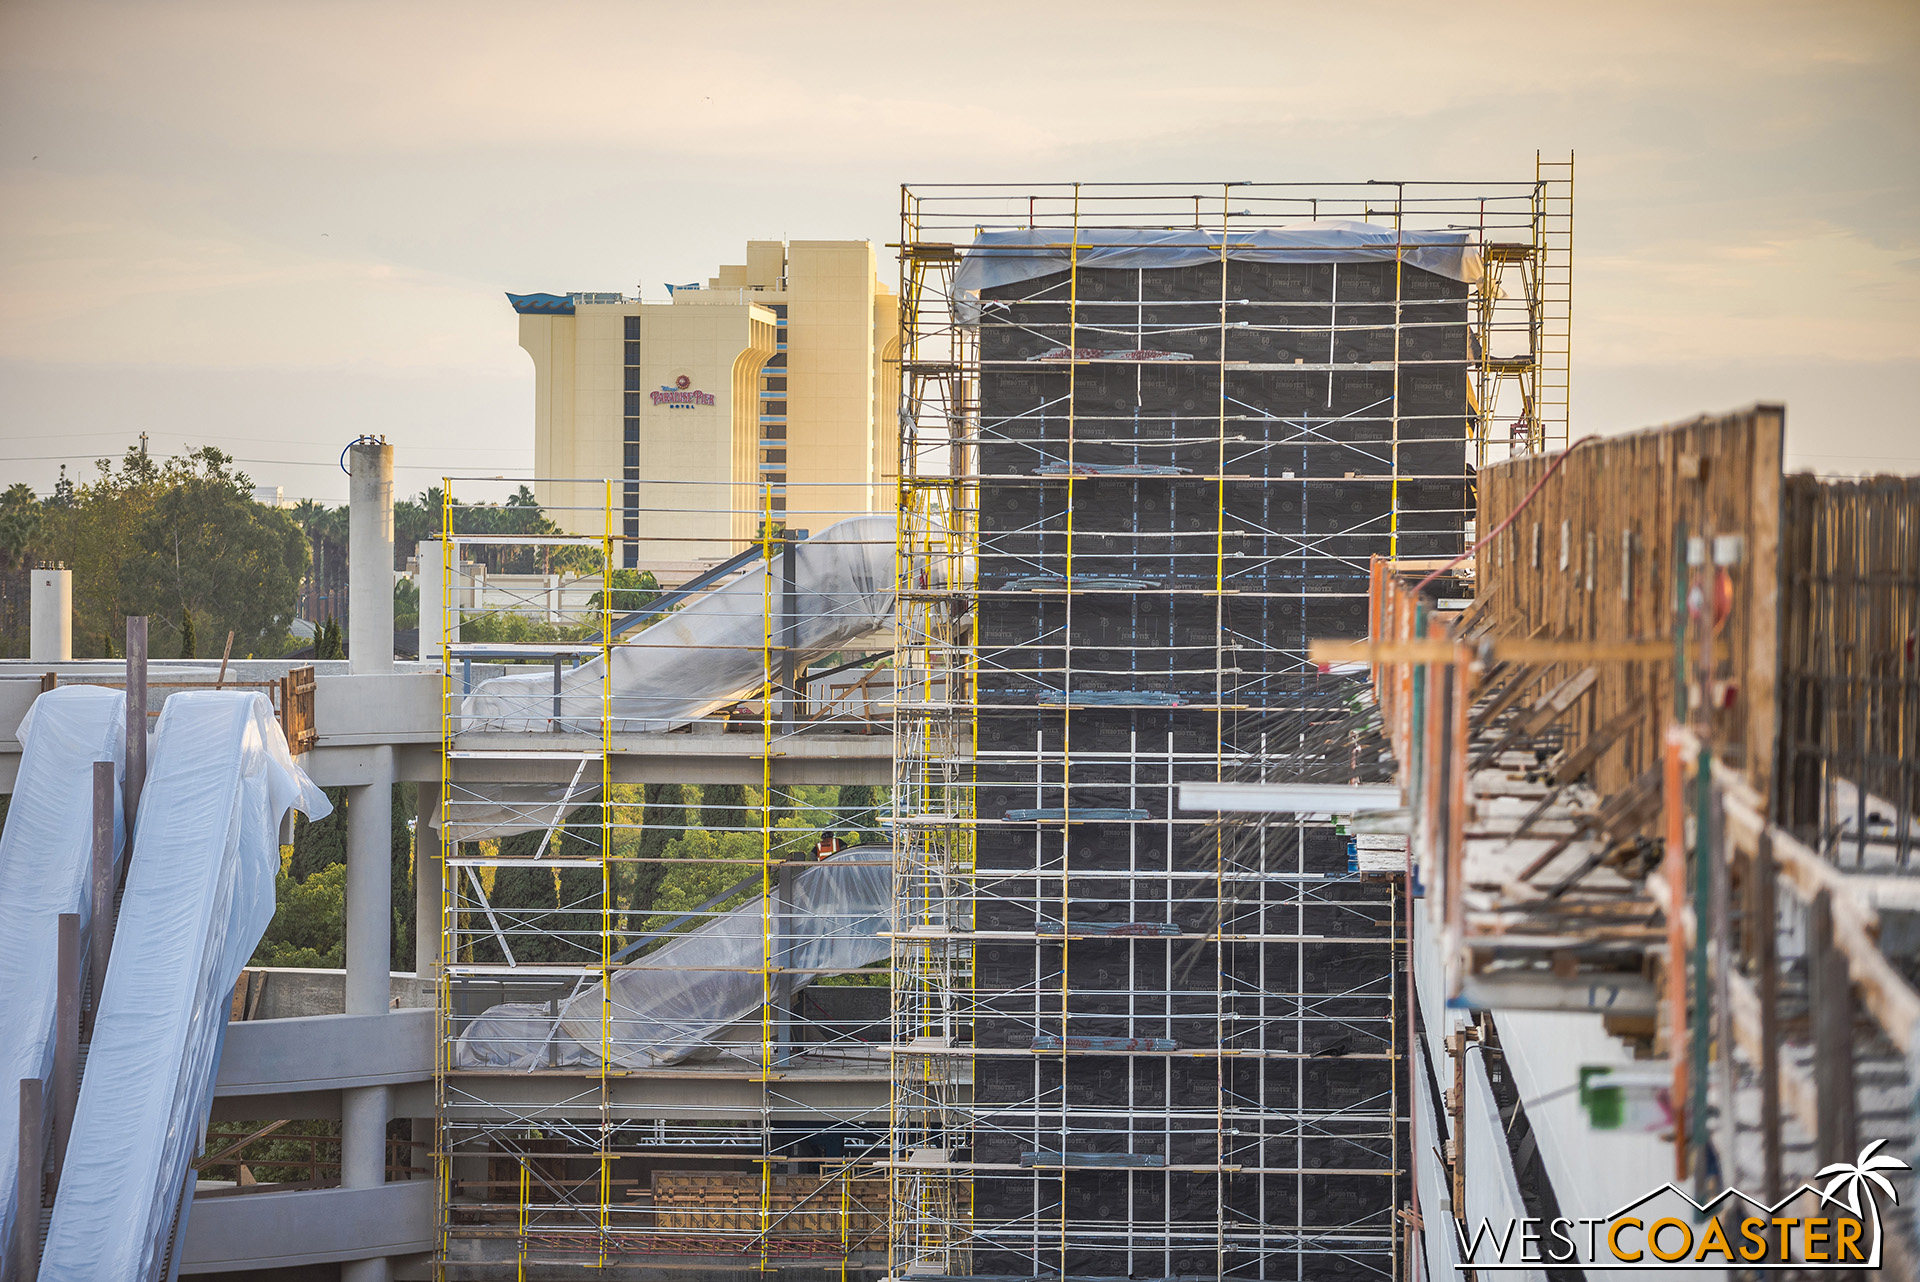 Waterproofing has been on the elevator tower walls.  it awaits the actual building skin, which I assume will be a composite panel similar to the existing structure.